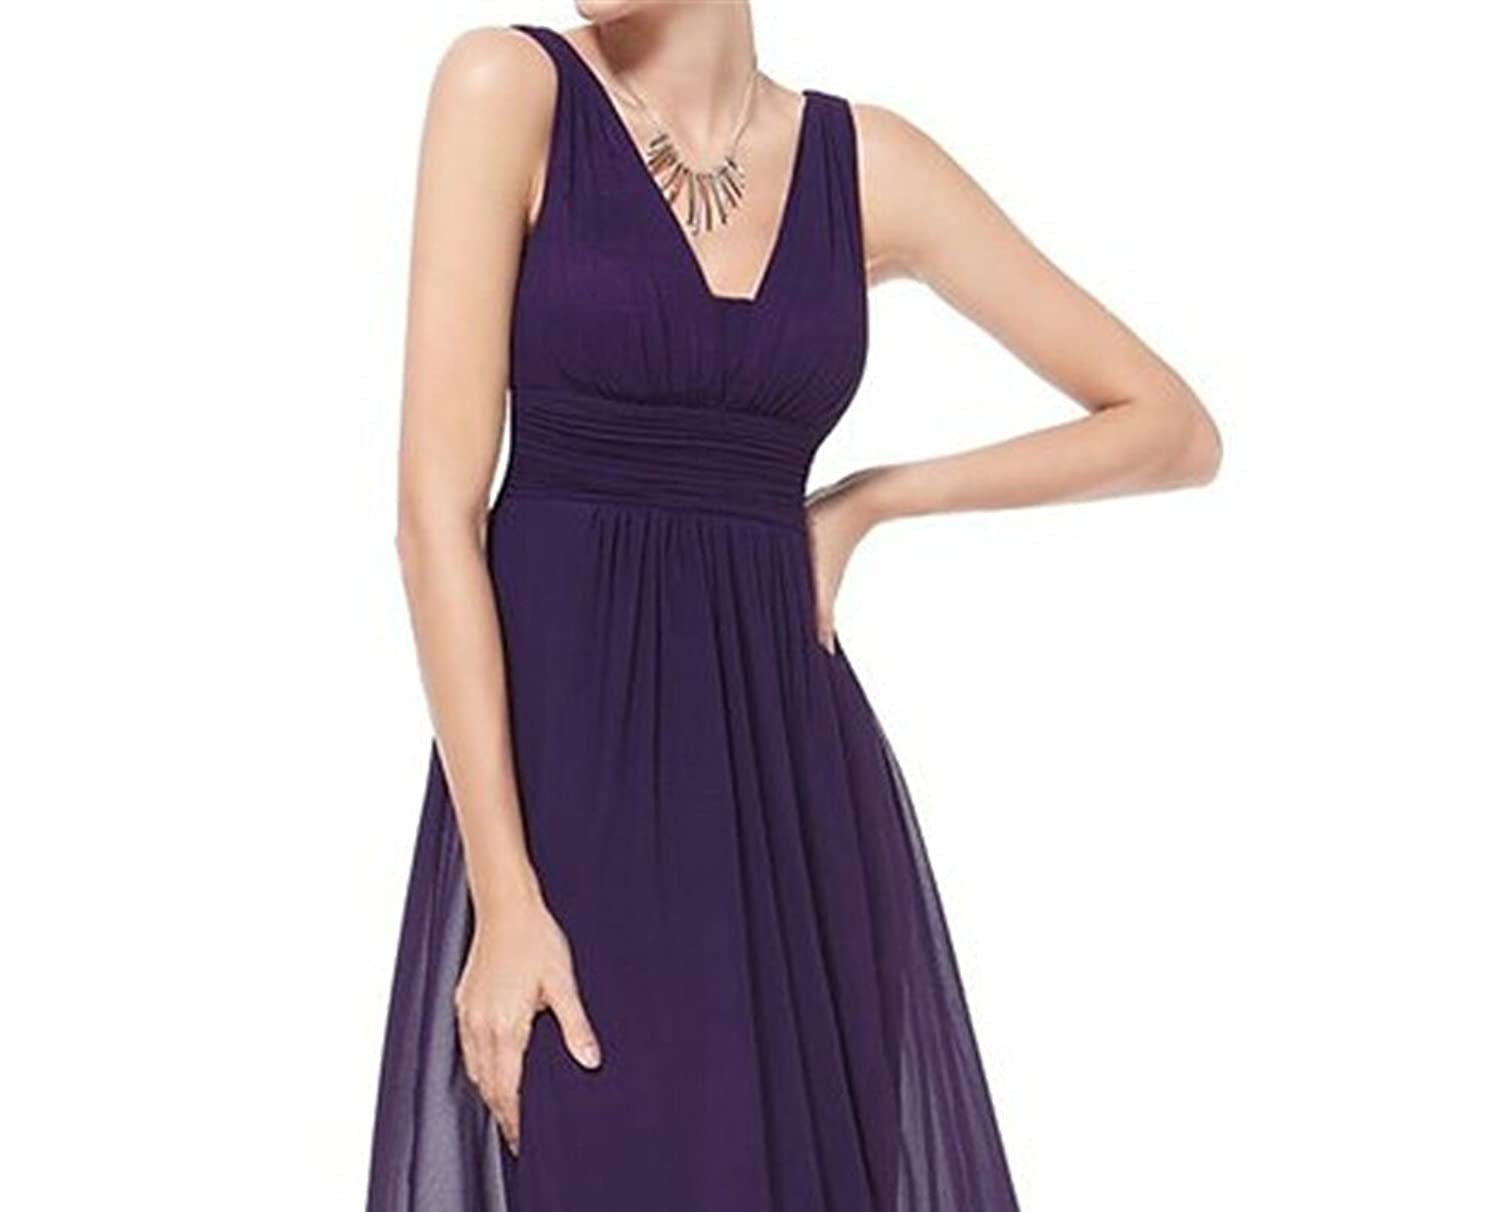 AngelDragon A-Line Straps Empire Evening Gowns Long Chiffon Formal Prom Dress